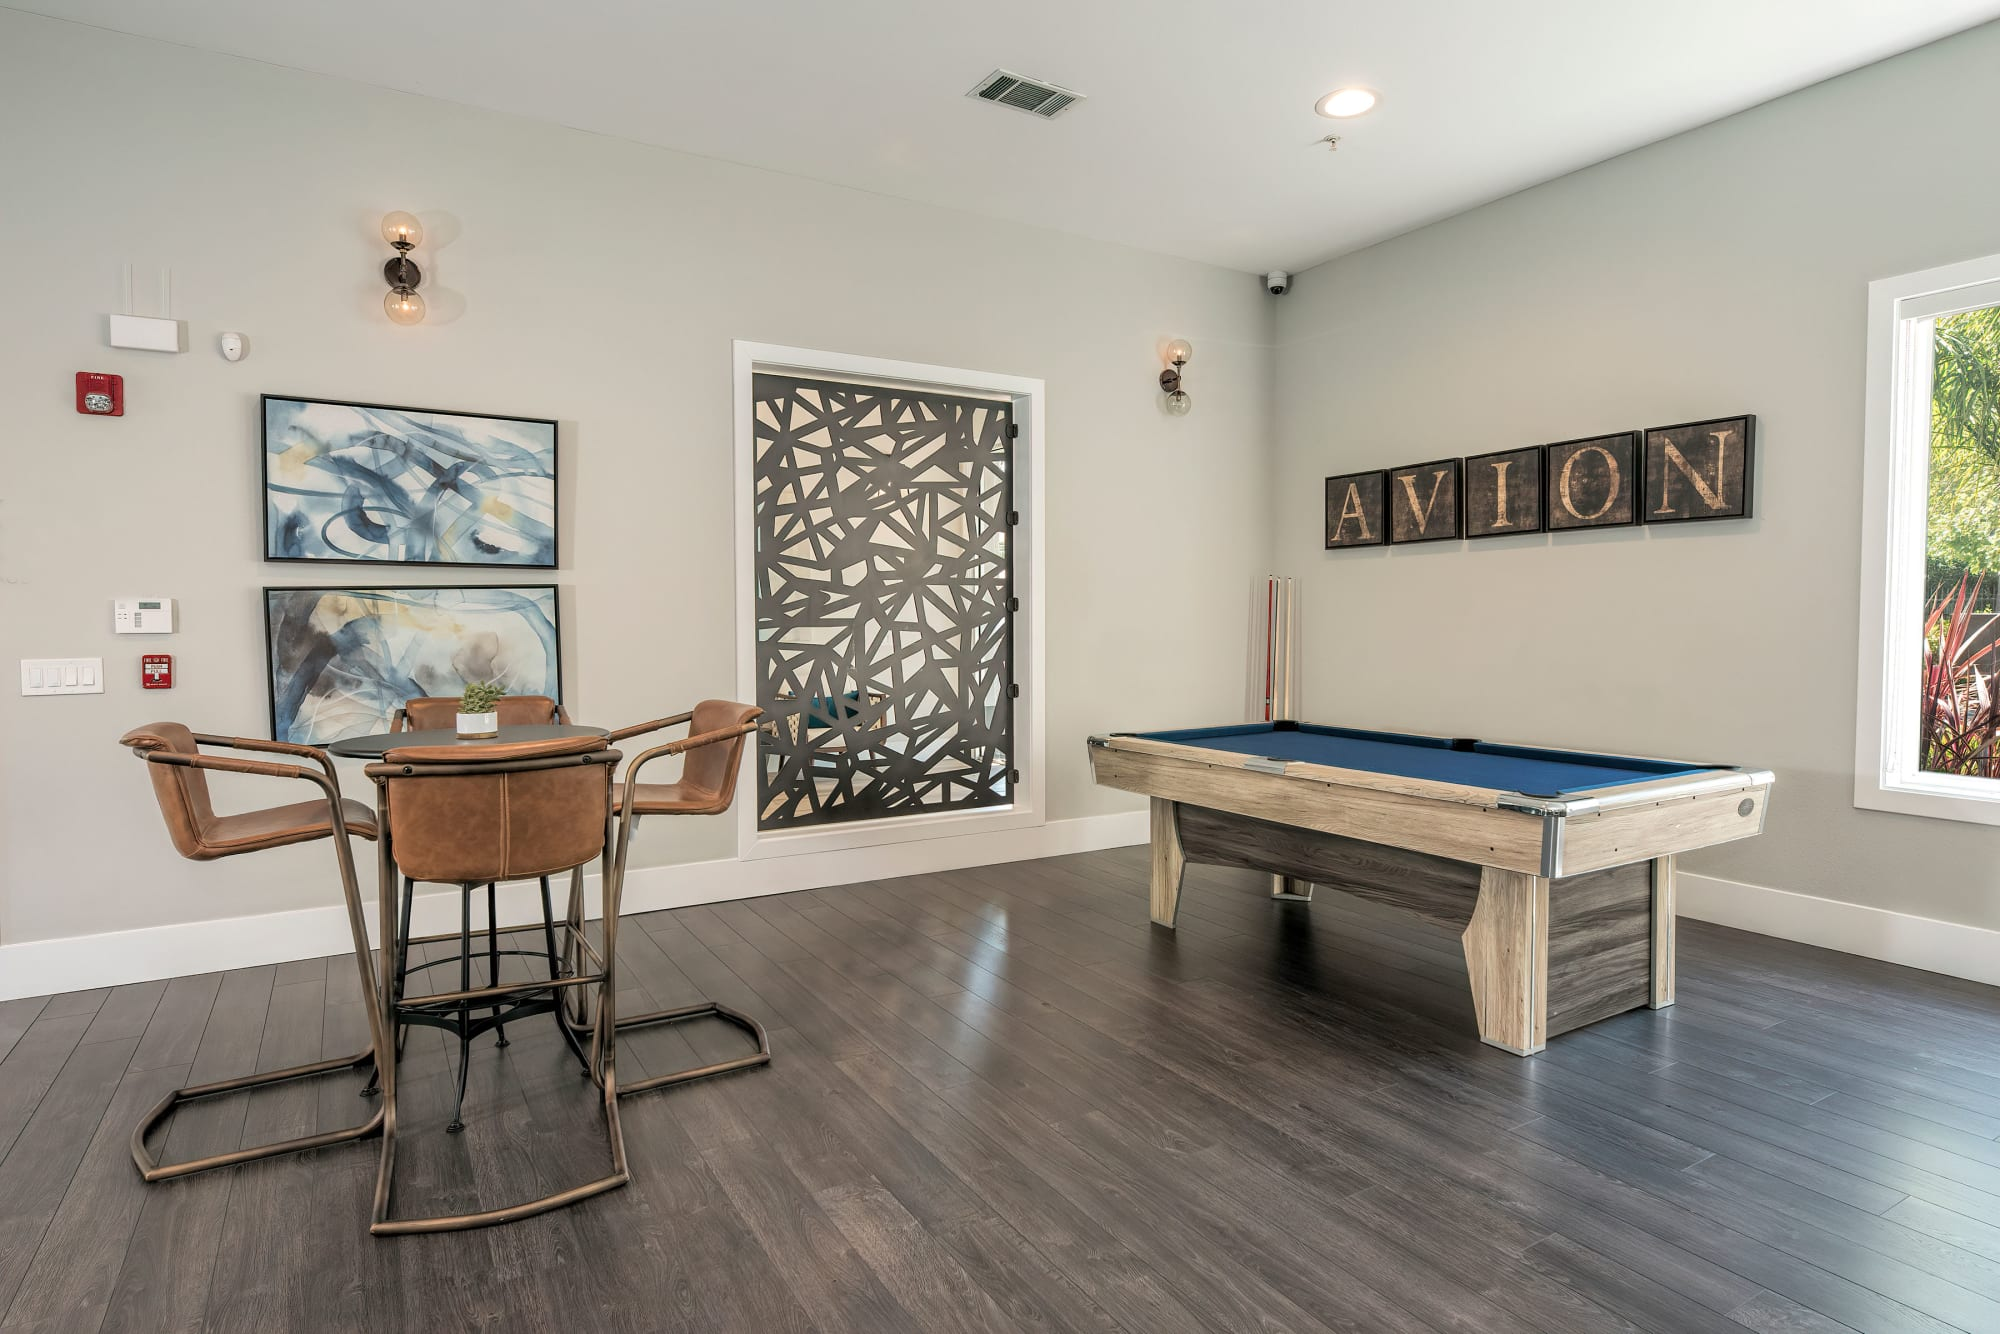 Pool table in the community area at Avion Apartments in Rancho Cordova, California